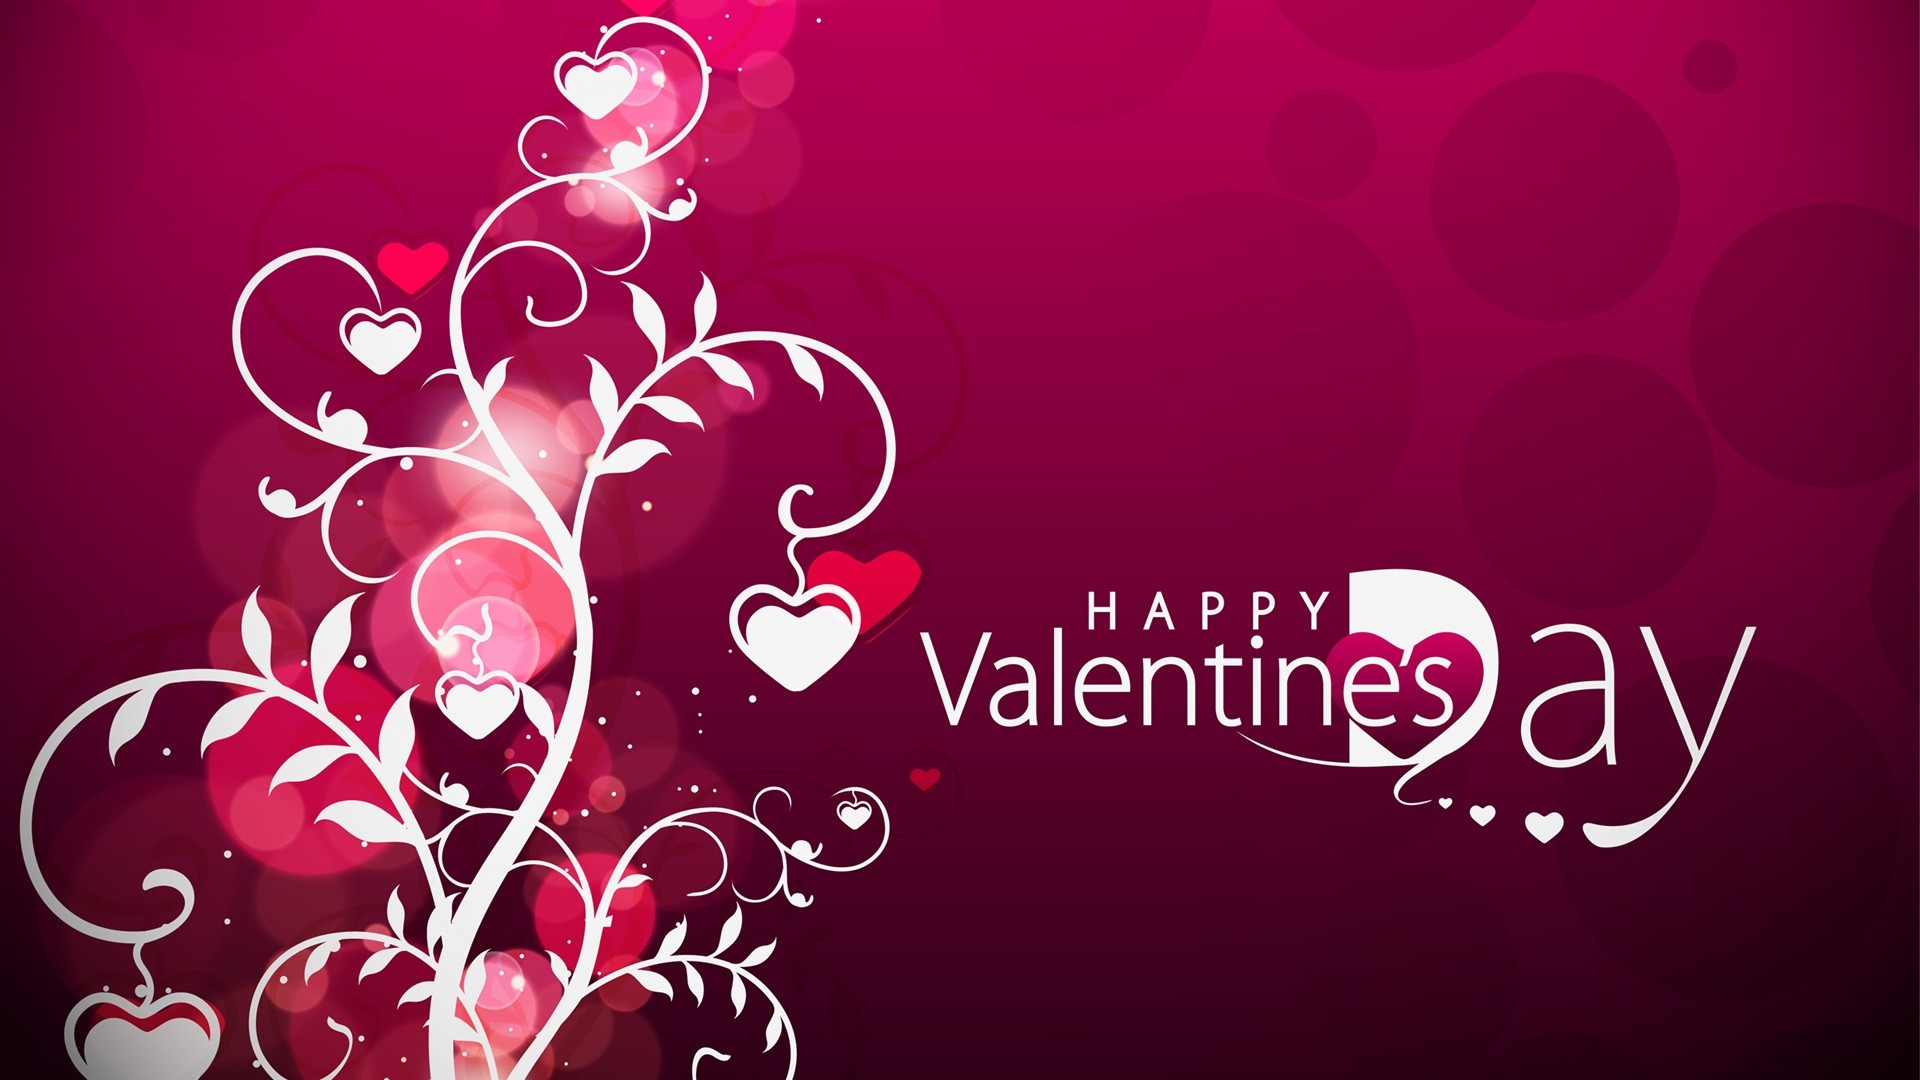 Happy Valentines Day Wallpaper HD